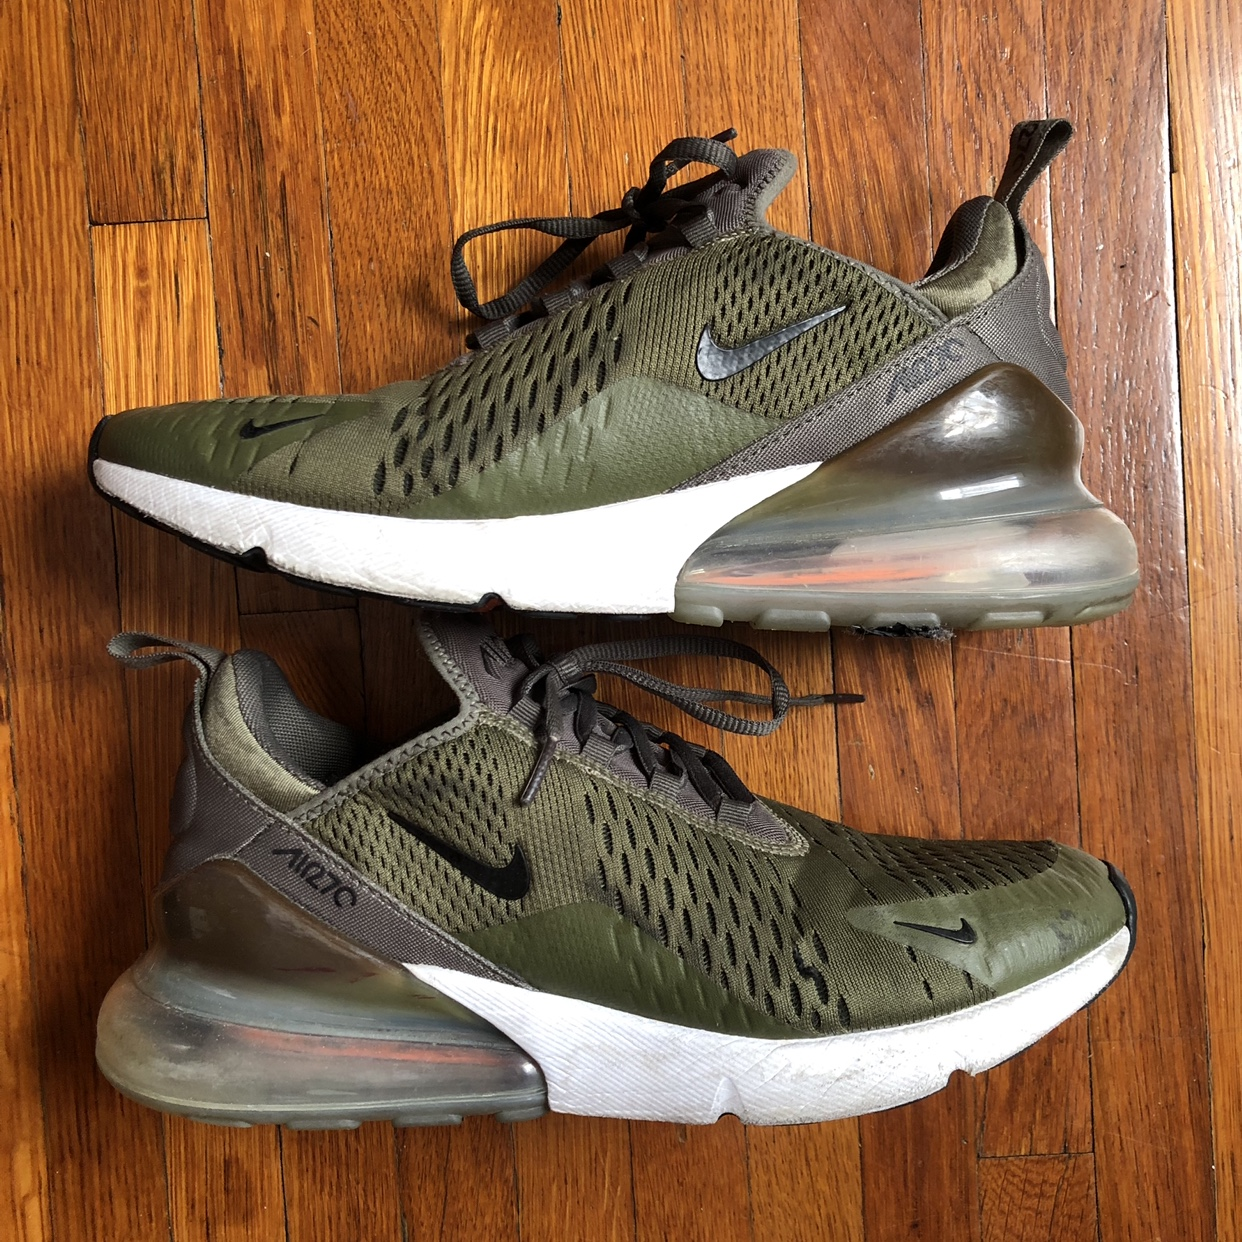 NIKE AIR MAX 270 USED WILL LOOK PRETTY